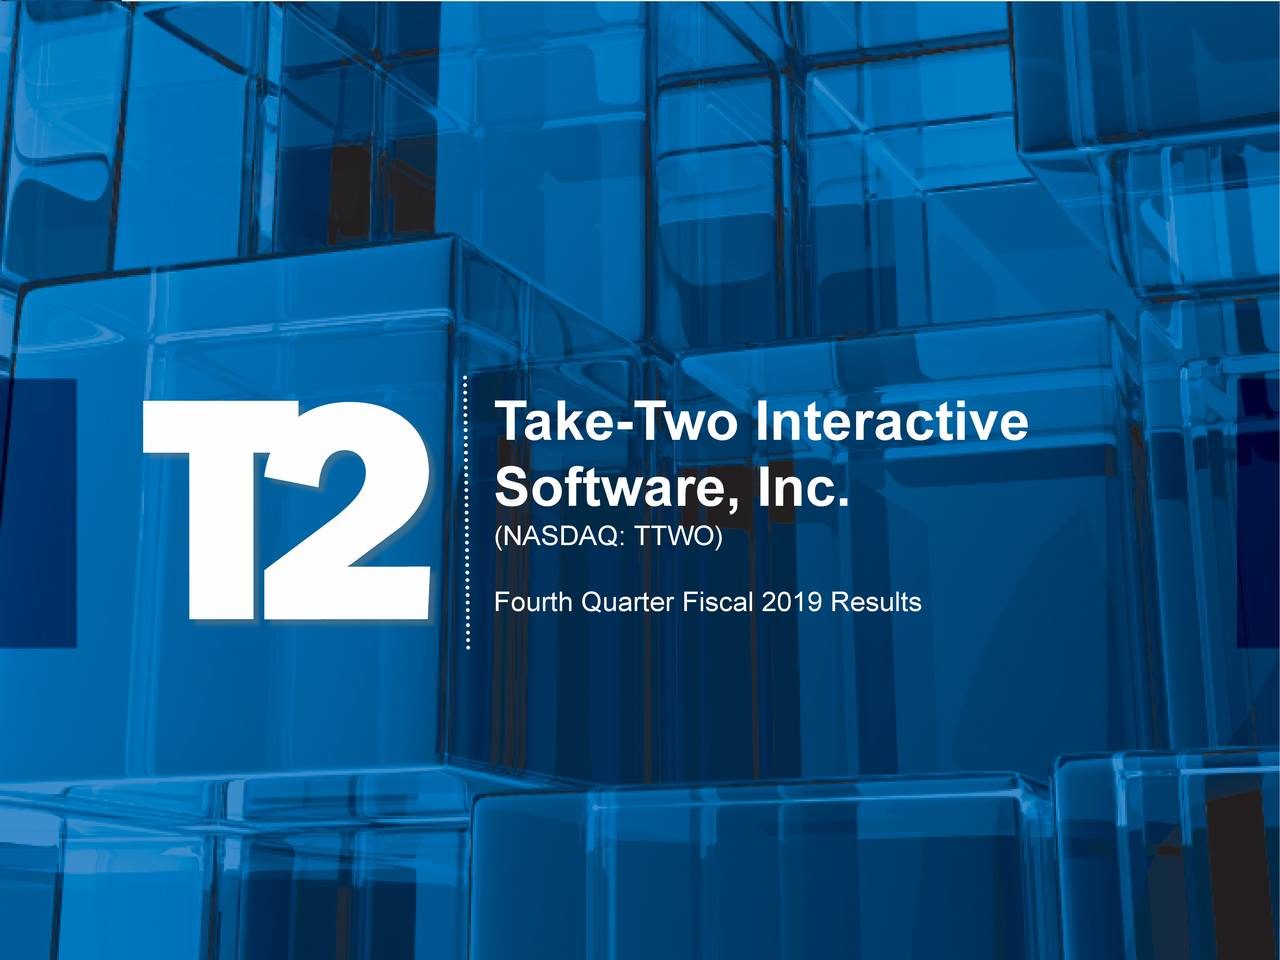 Earnings Disclaimer >> Take-Two Interactive Software, Inc. 2019 Q4 - Results - Earnings Call Slides - Take-Two ...